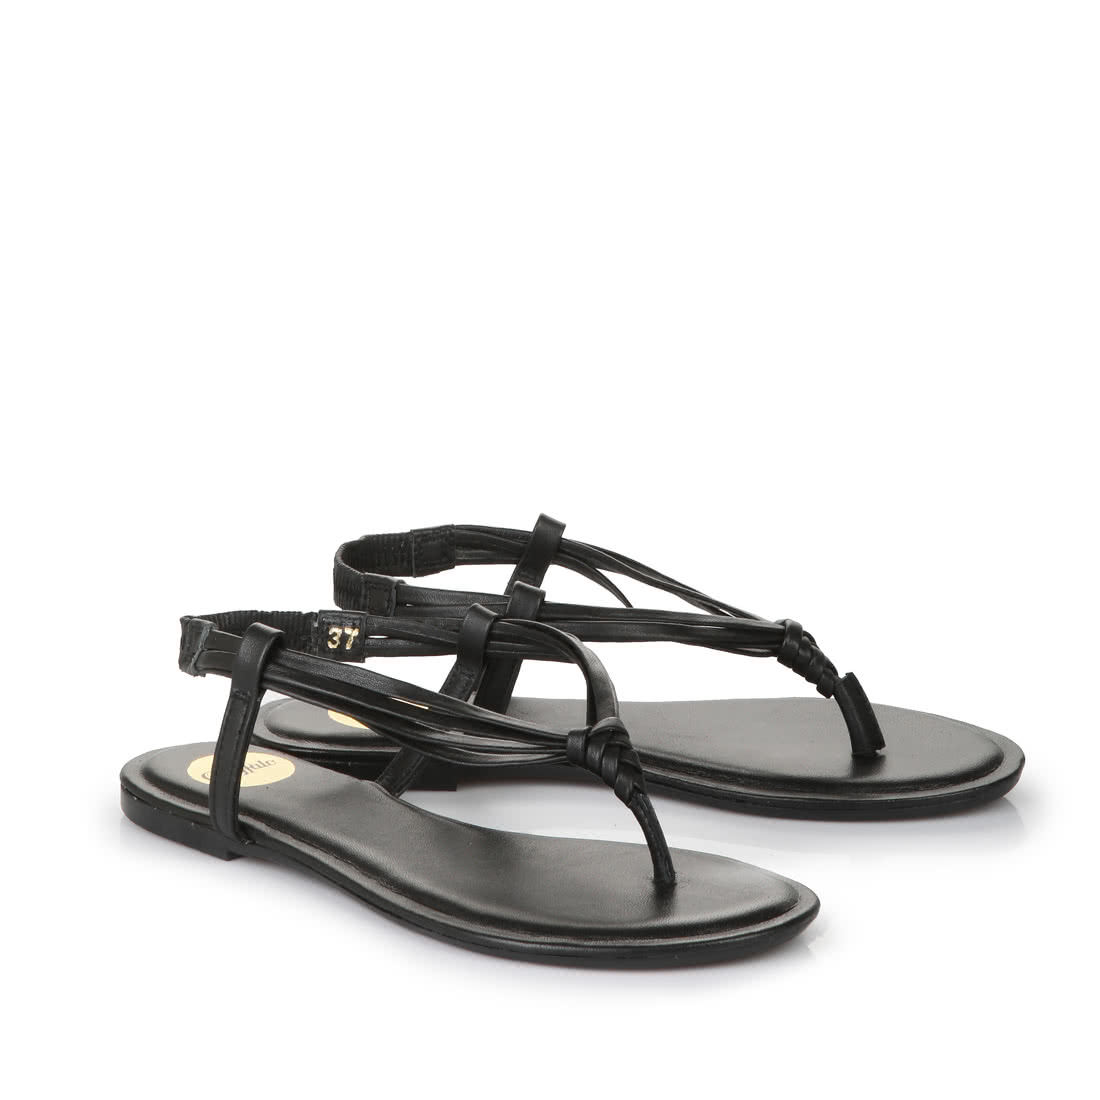 Buffalo Sandals In Black Buy Online In Buffalo Online Shop